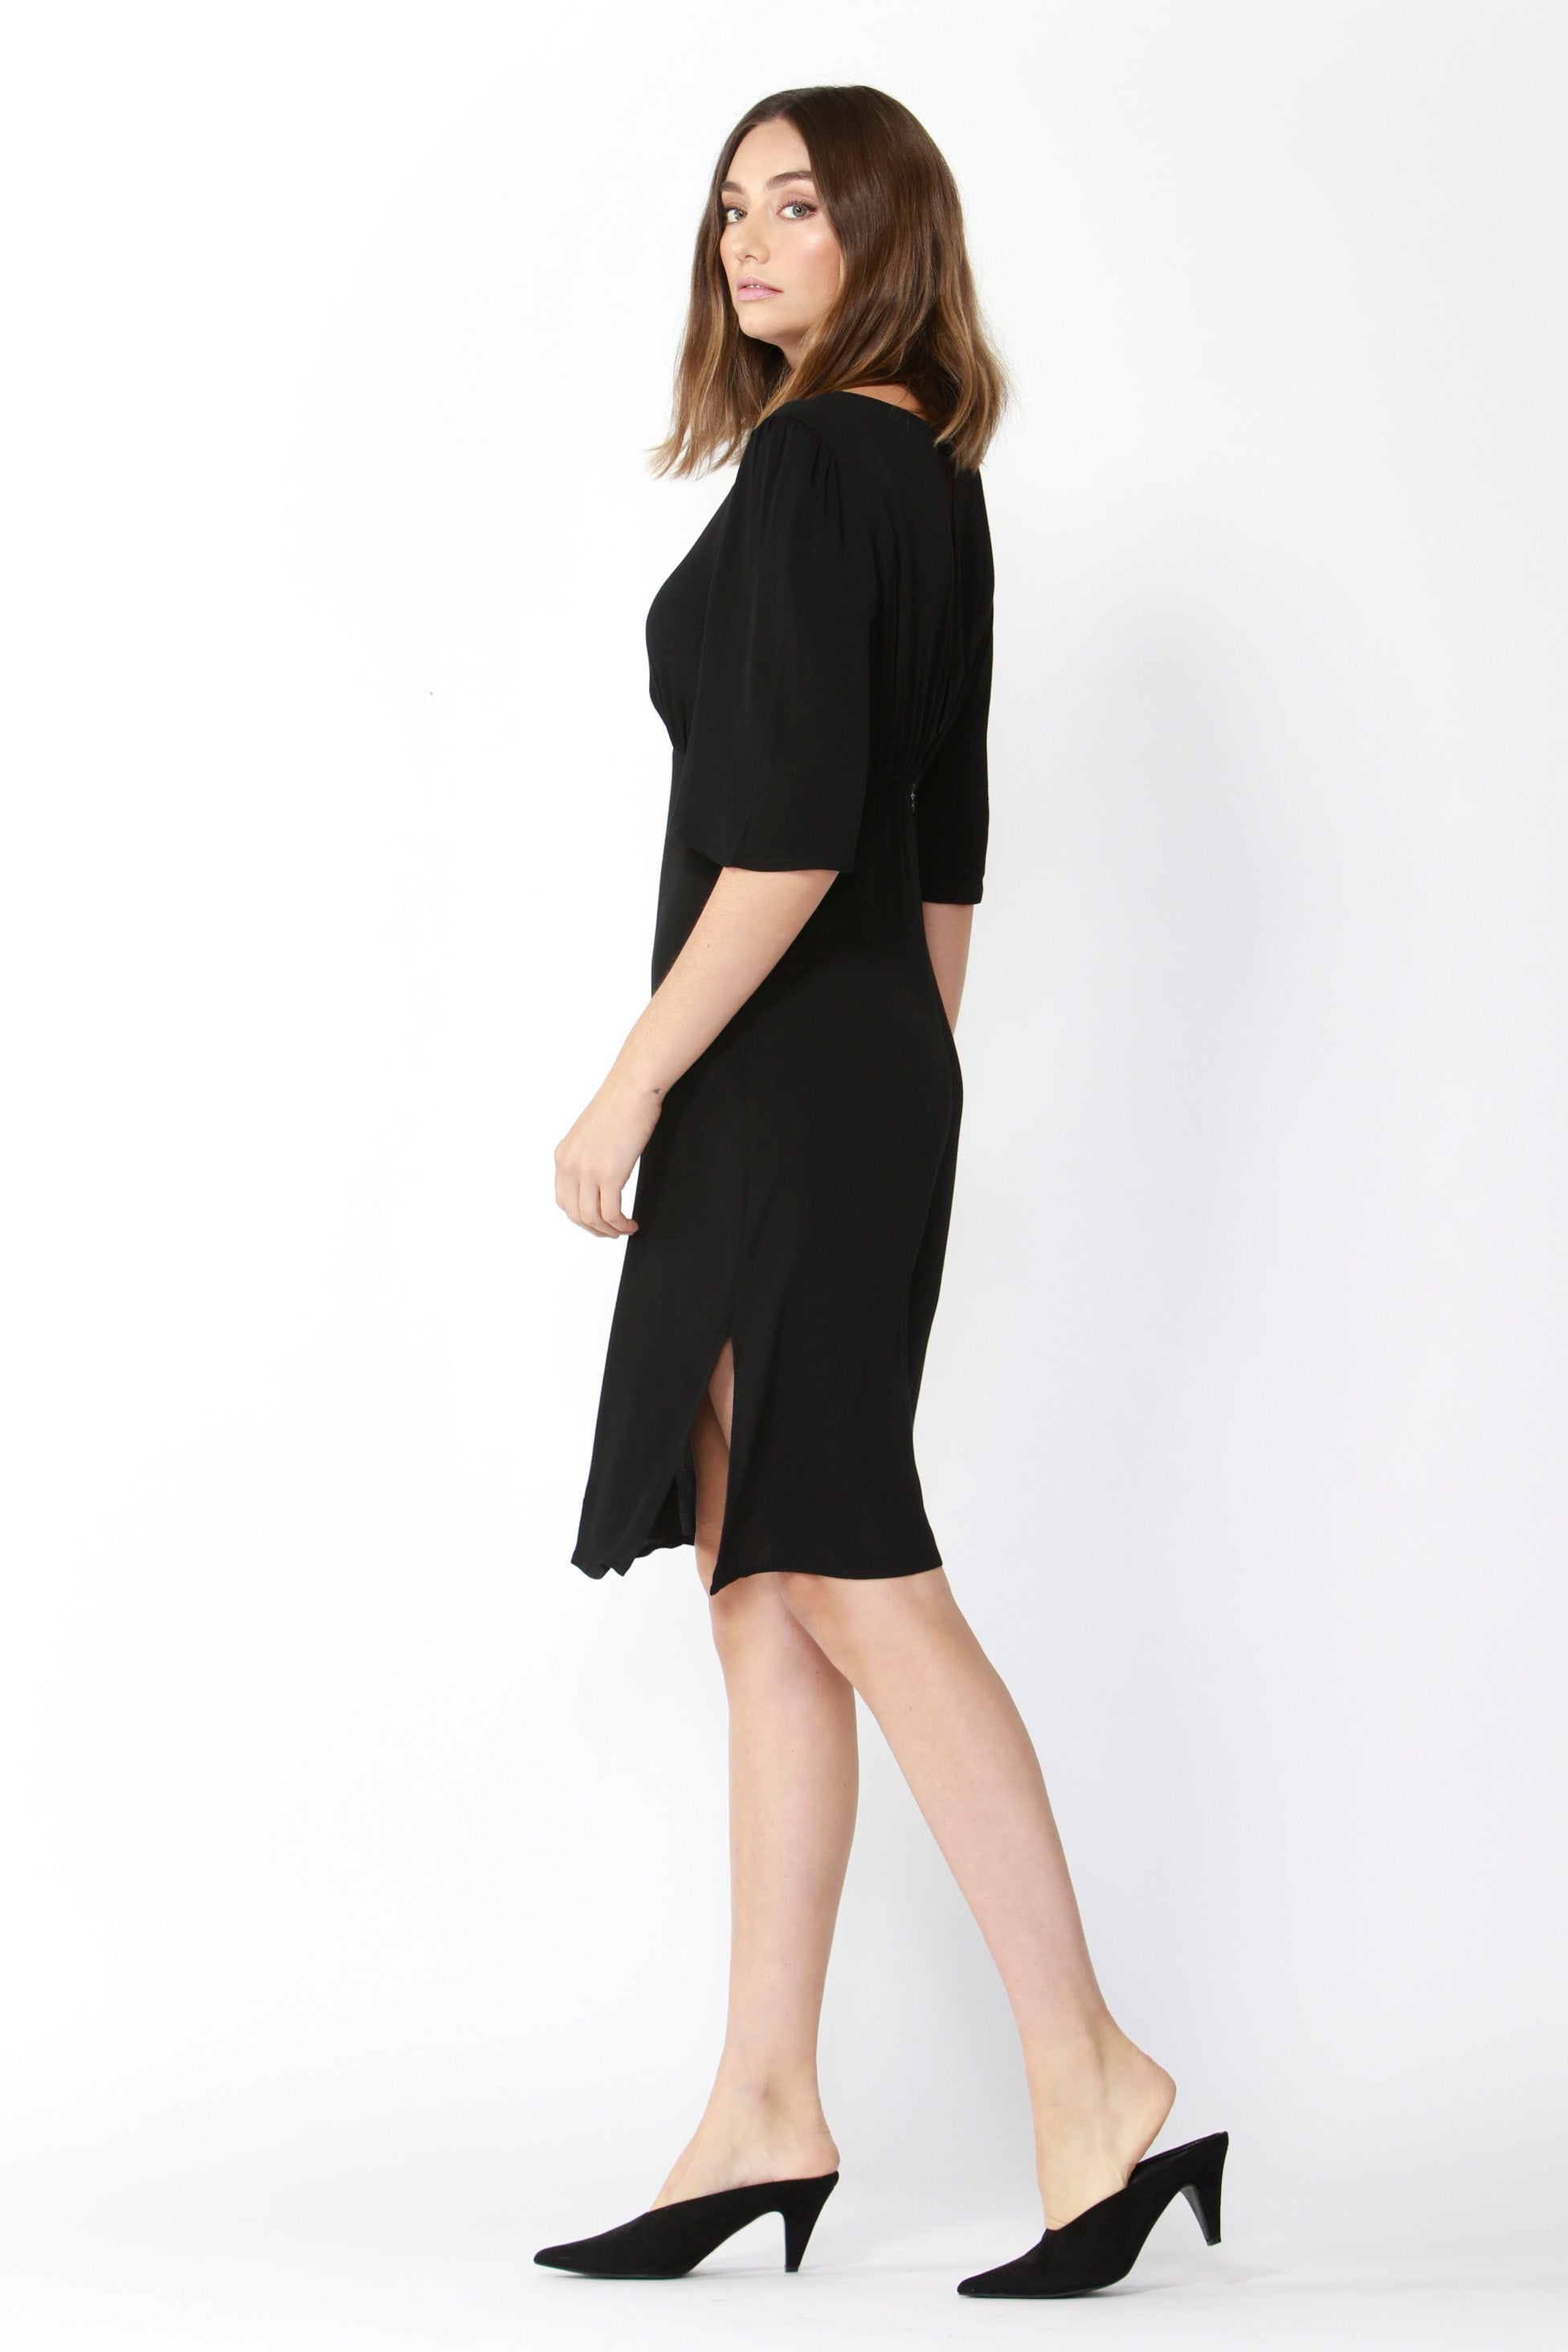 Fate + Becker Keep It Real Dress in Black